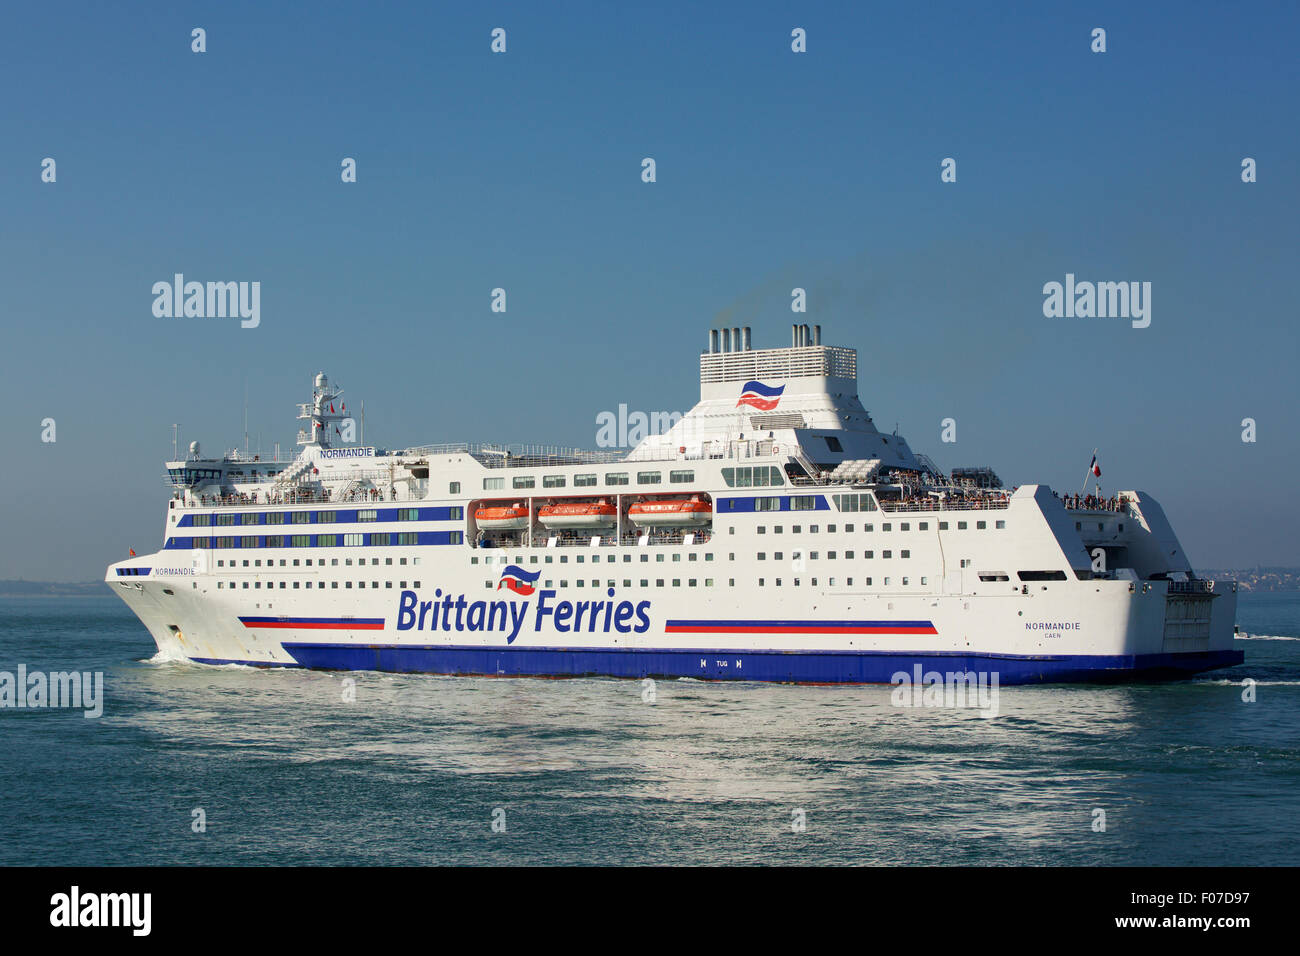 Cross Channel Ferry View Of The Brittany Ferries Car Ferry